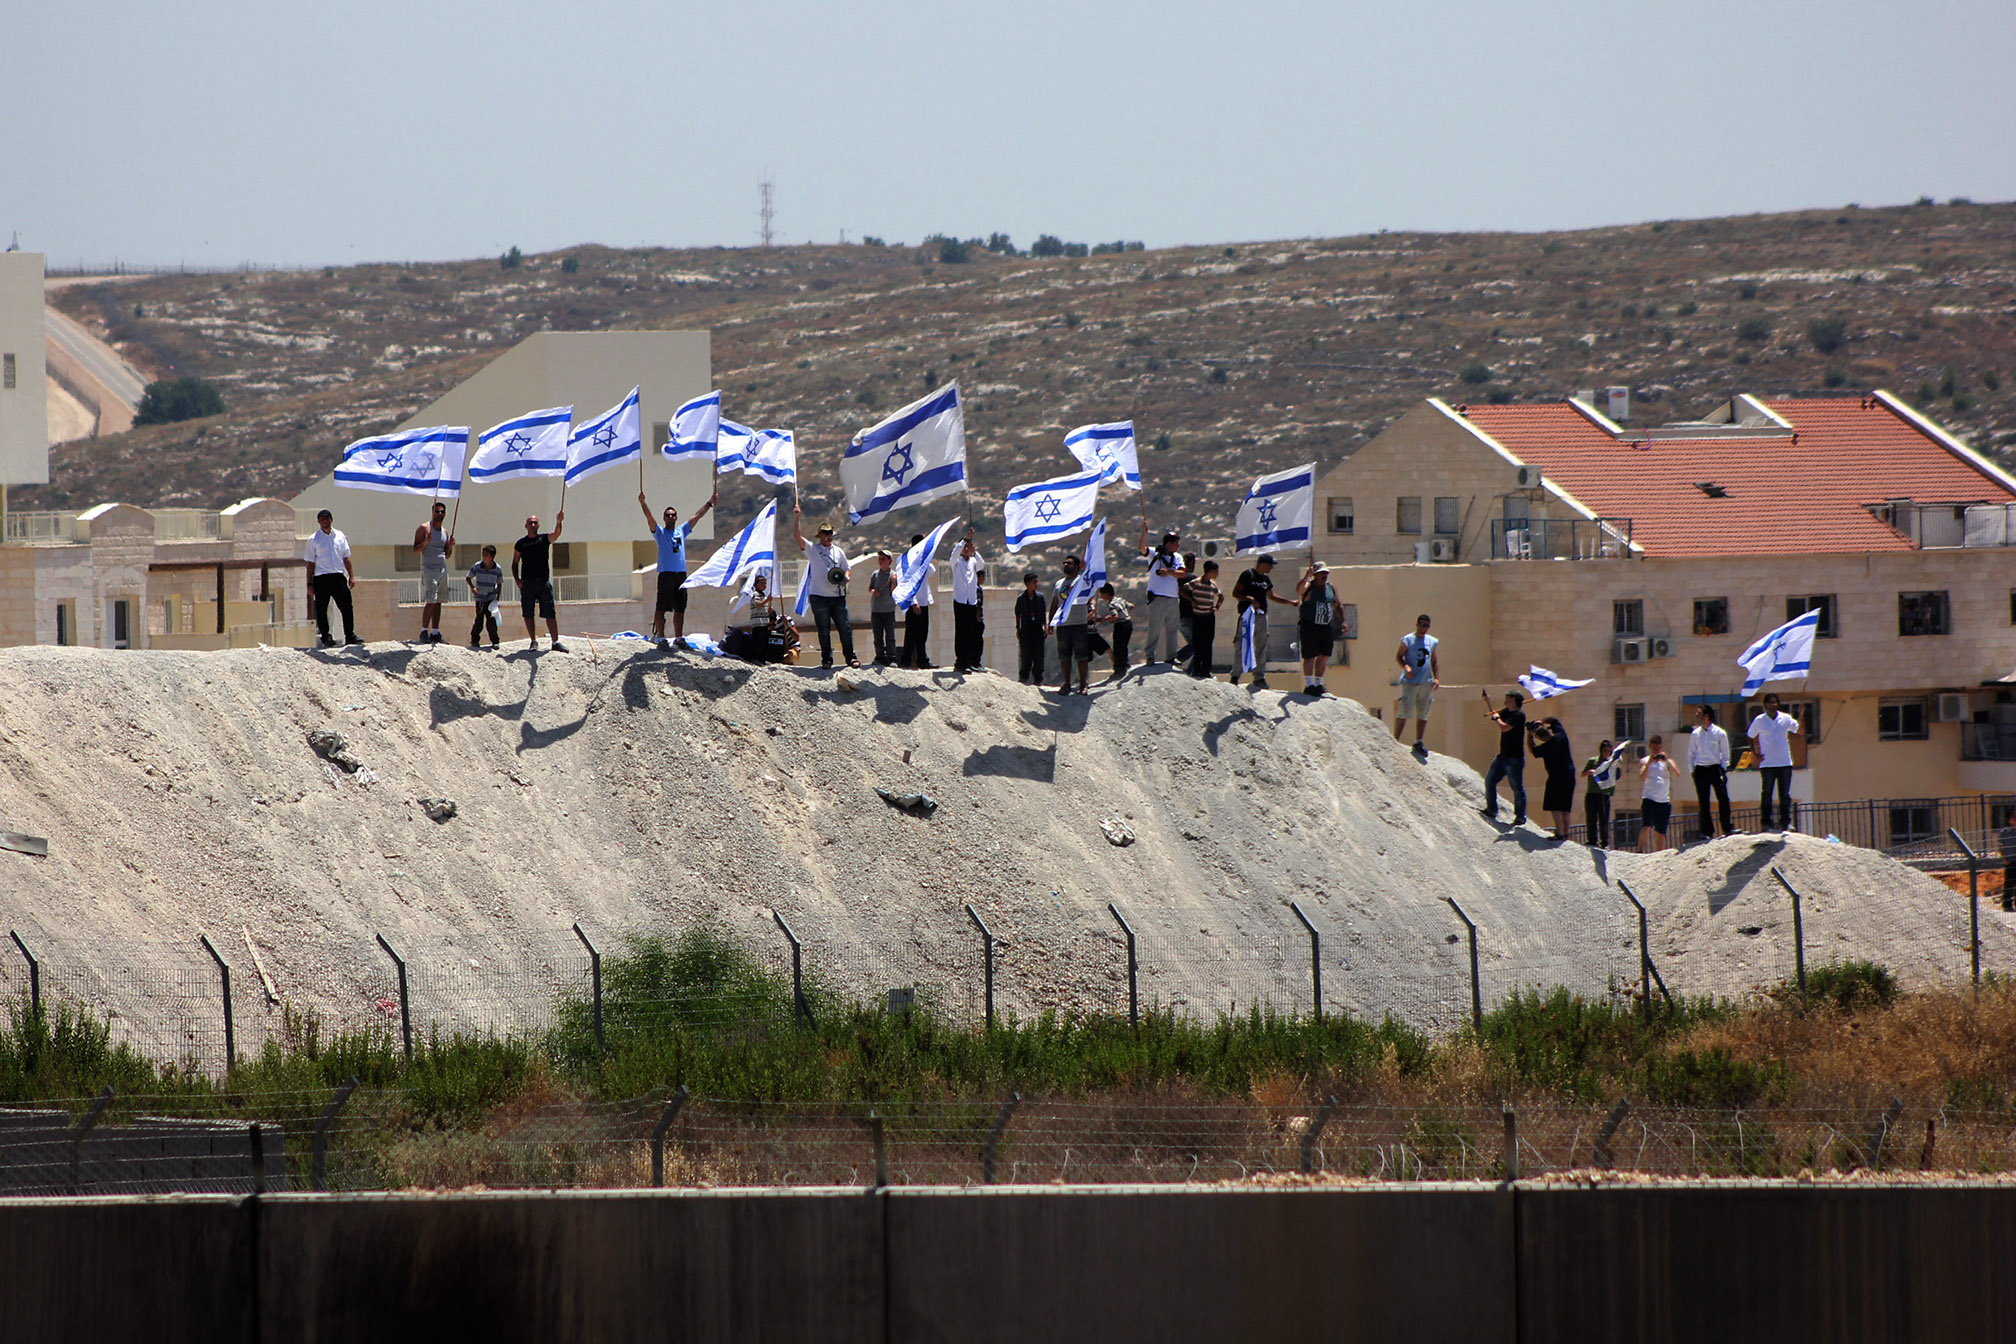 Israeli settlers from the illegal settlement of Modi'in Illit held Israeli flags and chanted slogans against Palestinian demonstrators on the other side of the Wall, during a weekly demonstration against the Israeli occupation and the Separation Wall in the West Bank village of Bil'in, June 28, 2013. (Photo by Ahmad Al-Bazz/GroundTruth)